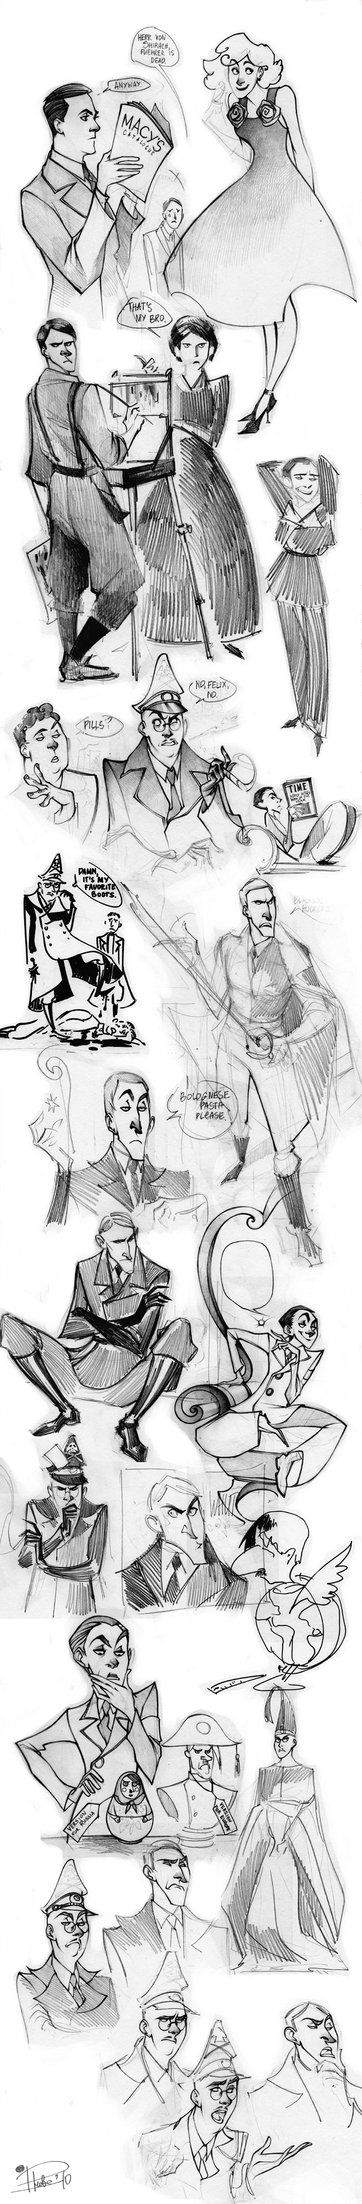 some bad guys sketch dump by Phobs on DeviantArt